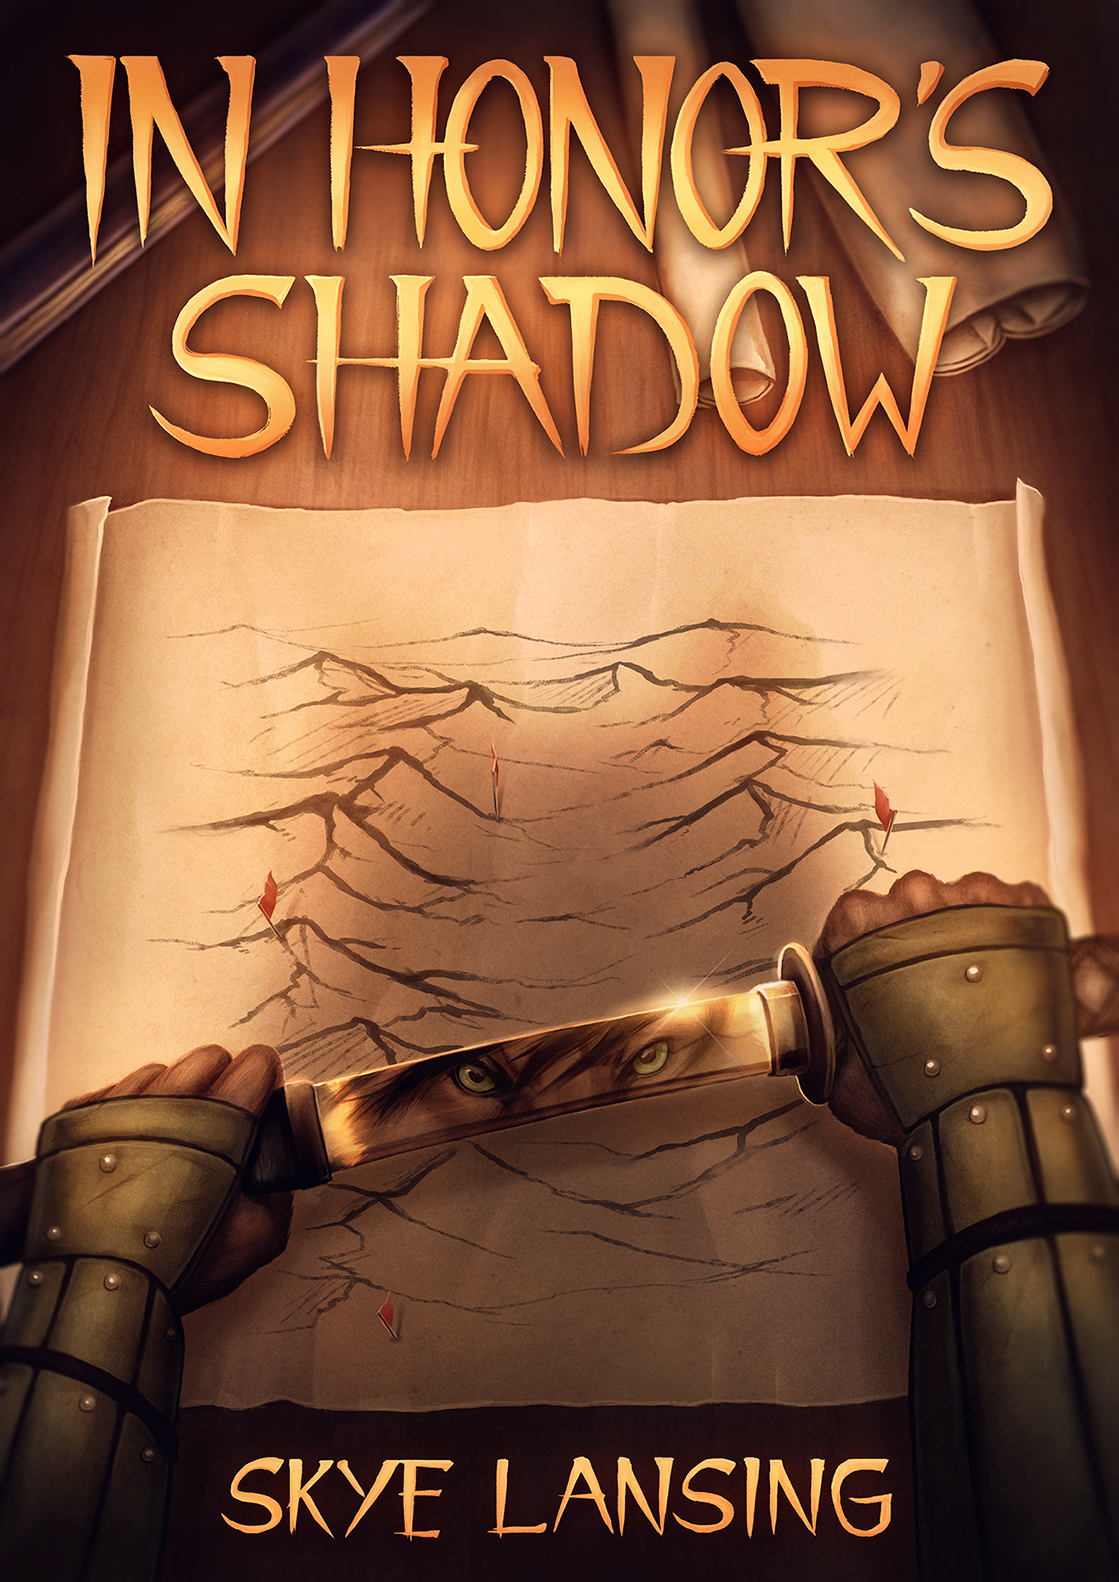 Furry book month october skye lansing in honors shadow cover small fandeluxe Image collections